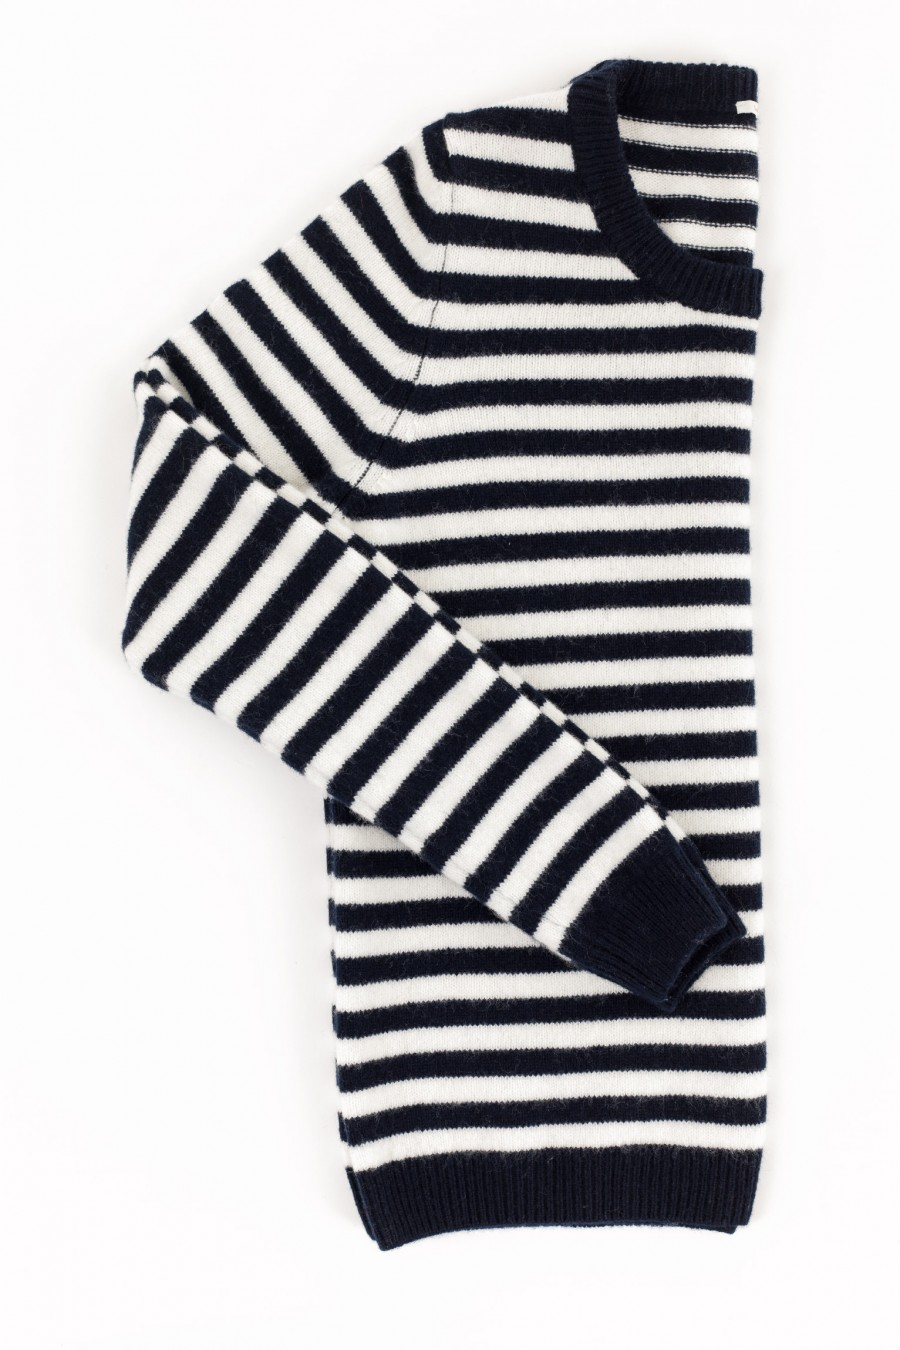 Crew-neck pullover with blue and white stripes